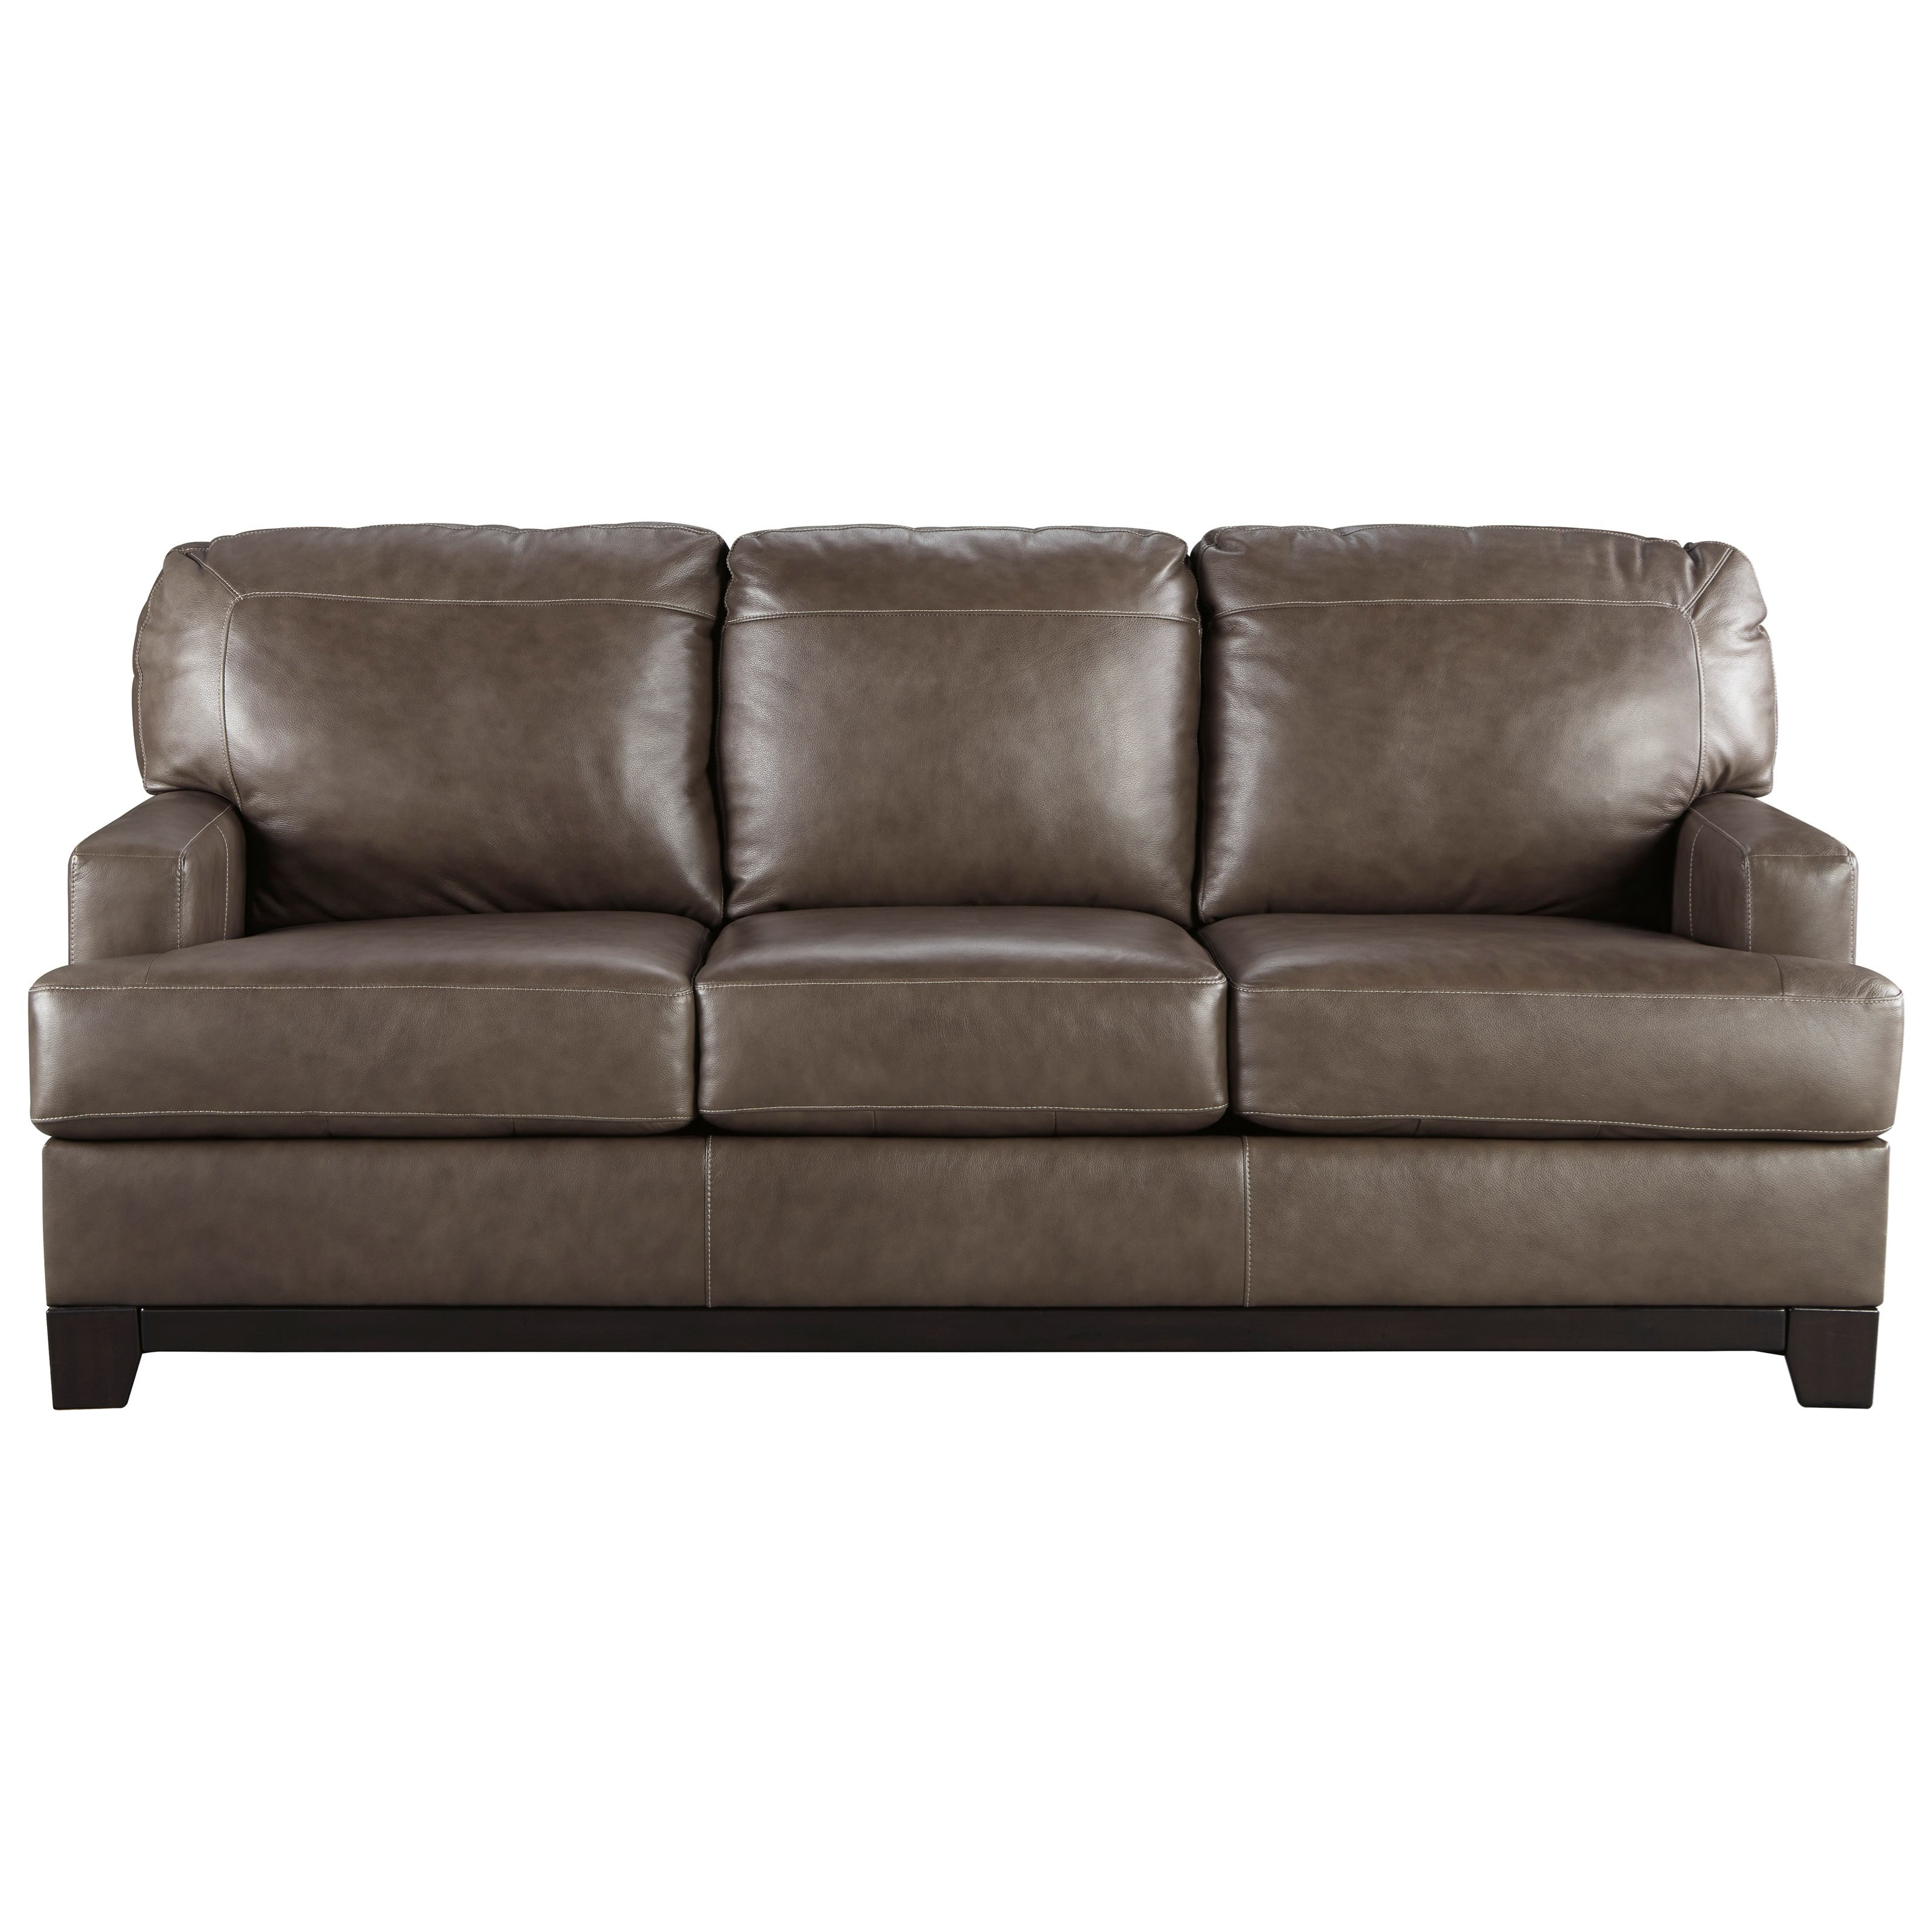 Signature Design By Ashley Derwood 8800338 Contemporary Leather Match Sofa Becker Furniture